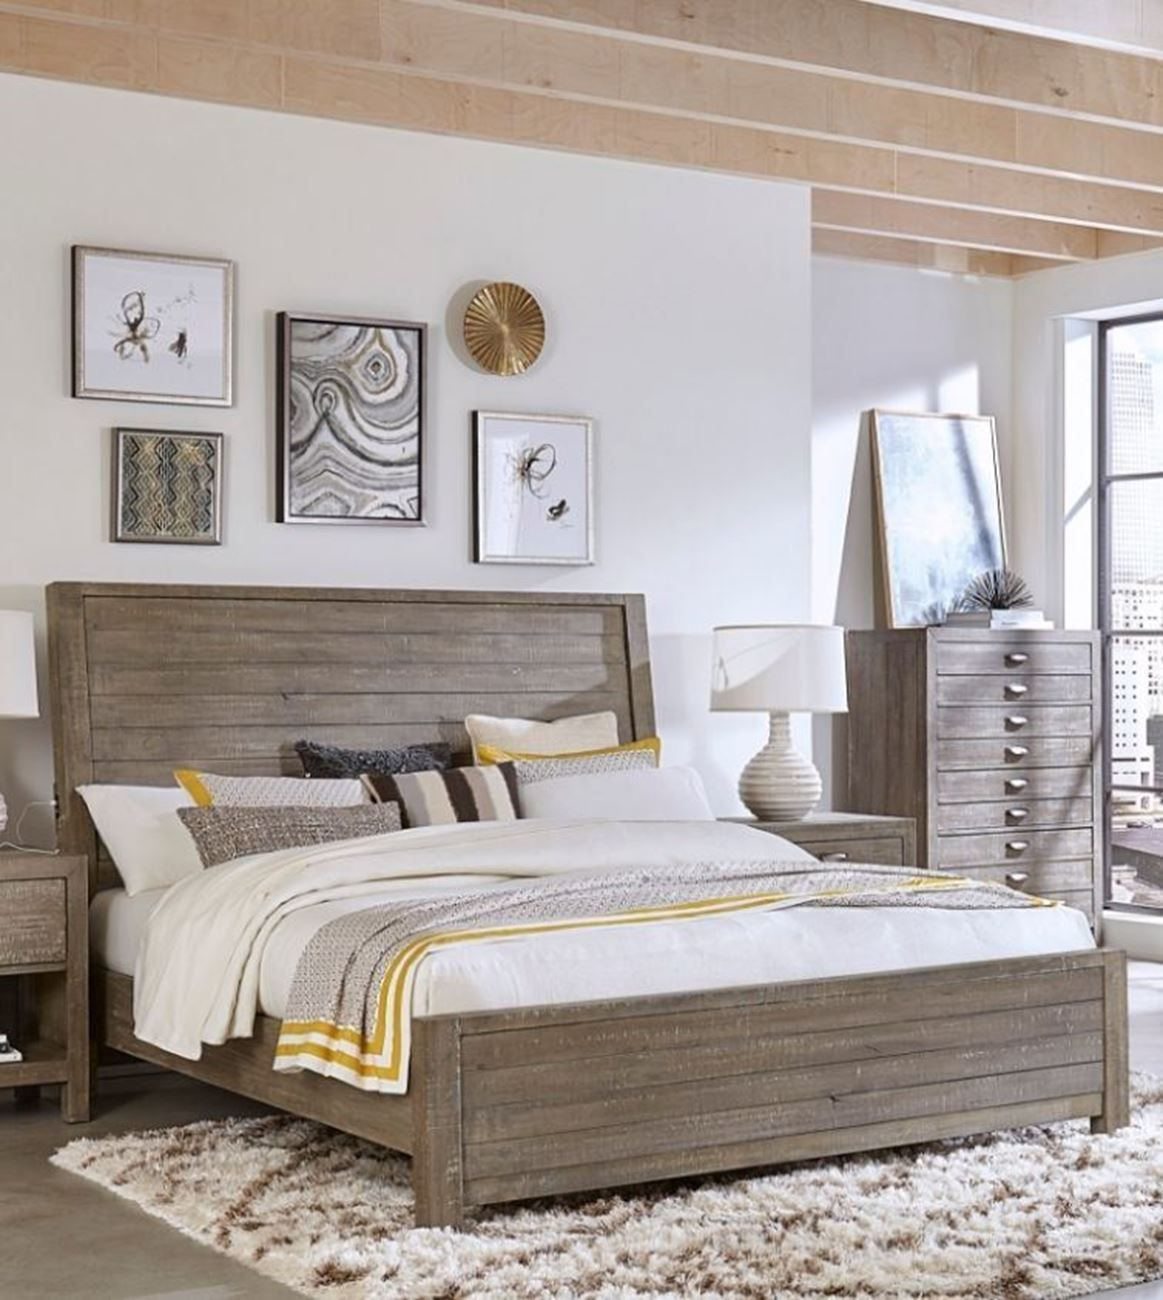 Shop The Radiata Panel Bed And Bedroom Collection By Aspenhome At Woodstock Furniture Mattress Outlet Special Furniture Mattress Furniture King Storage Bed